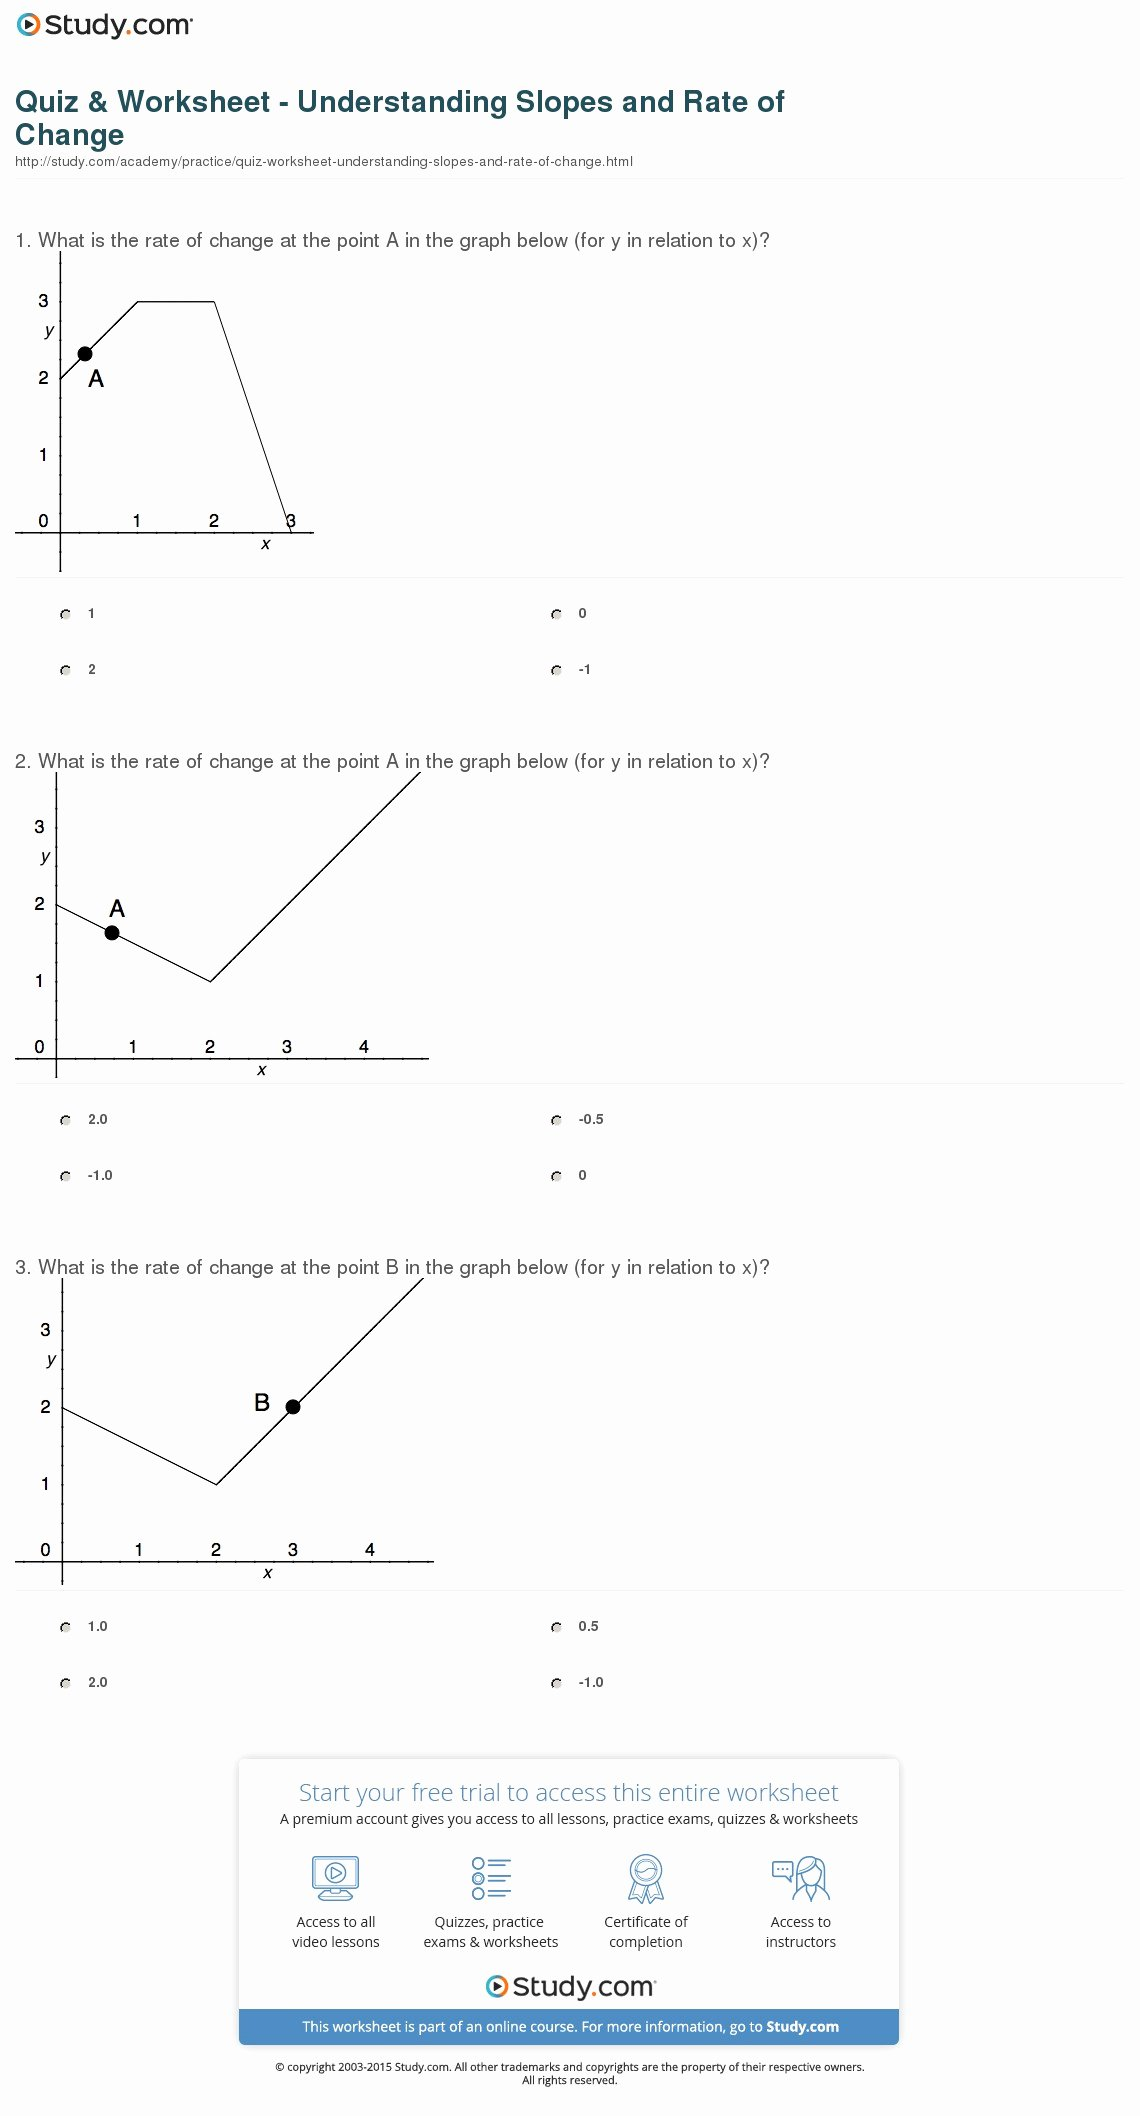 Rate Of Change Worksheet Fresh Quiz & Worksheet Understanding Slopes and Rate Of Change